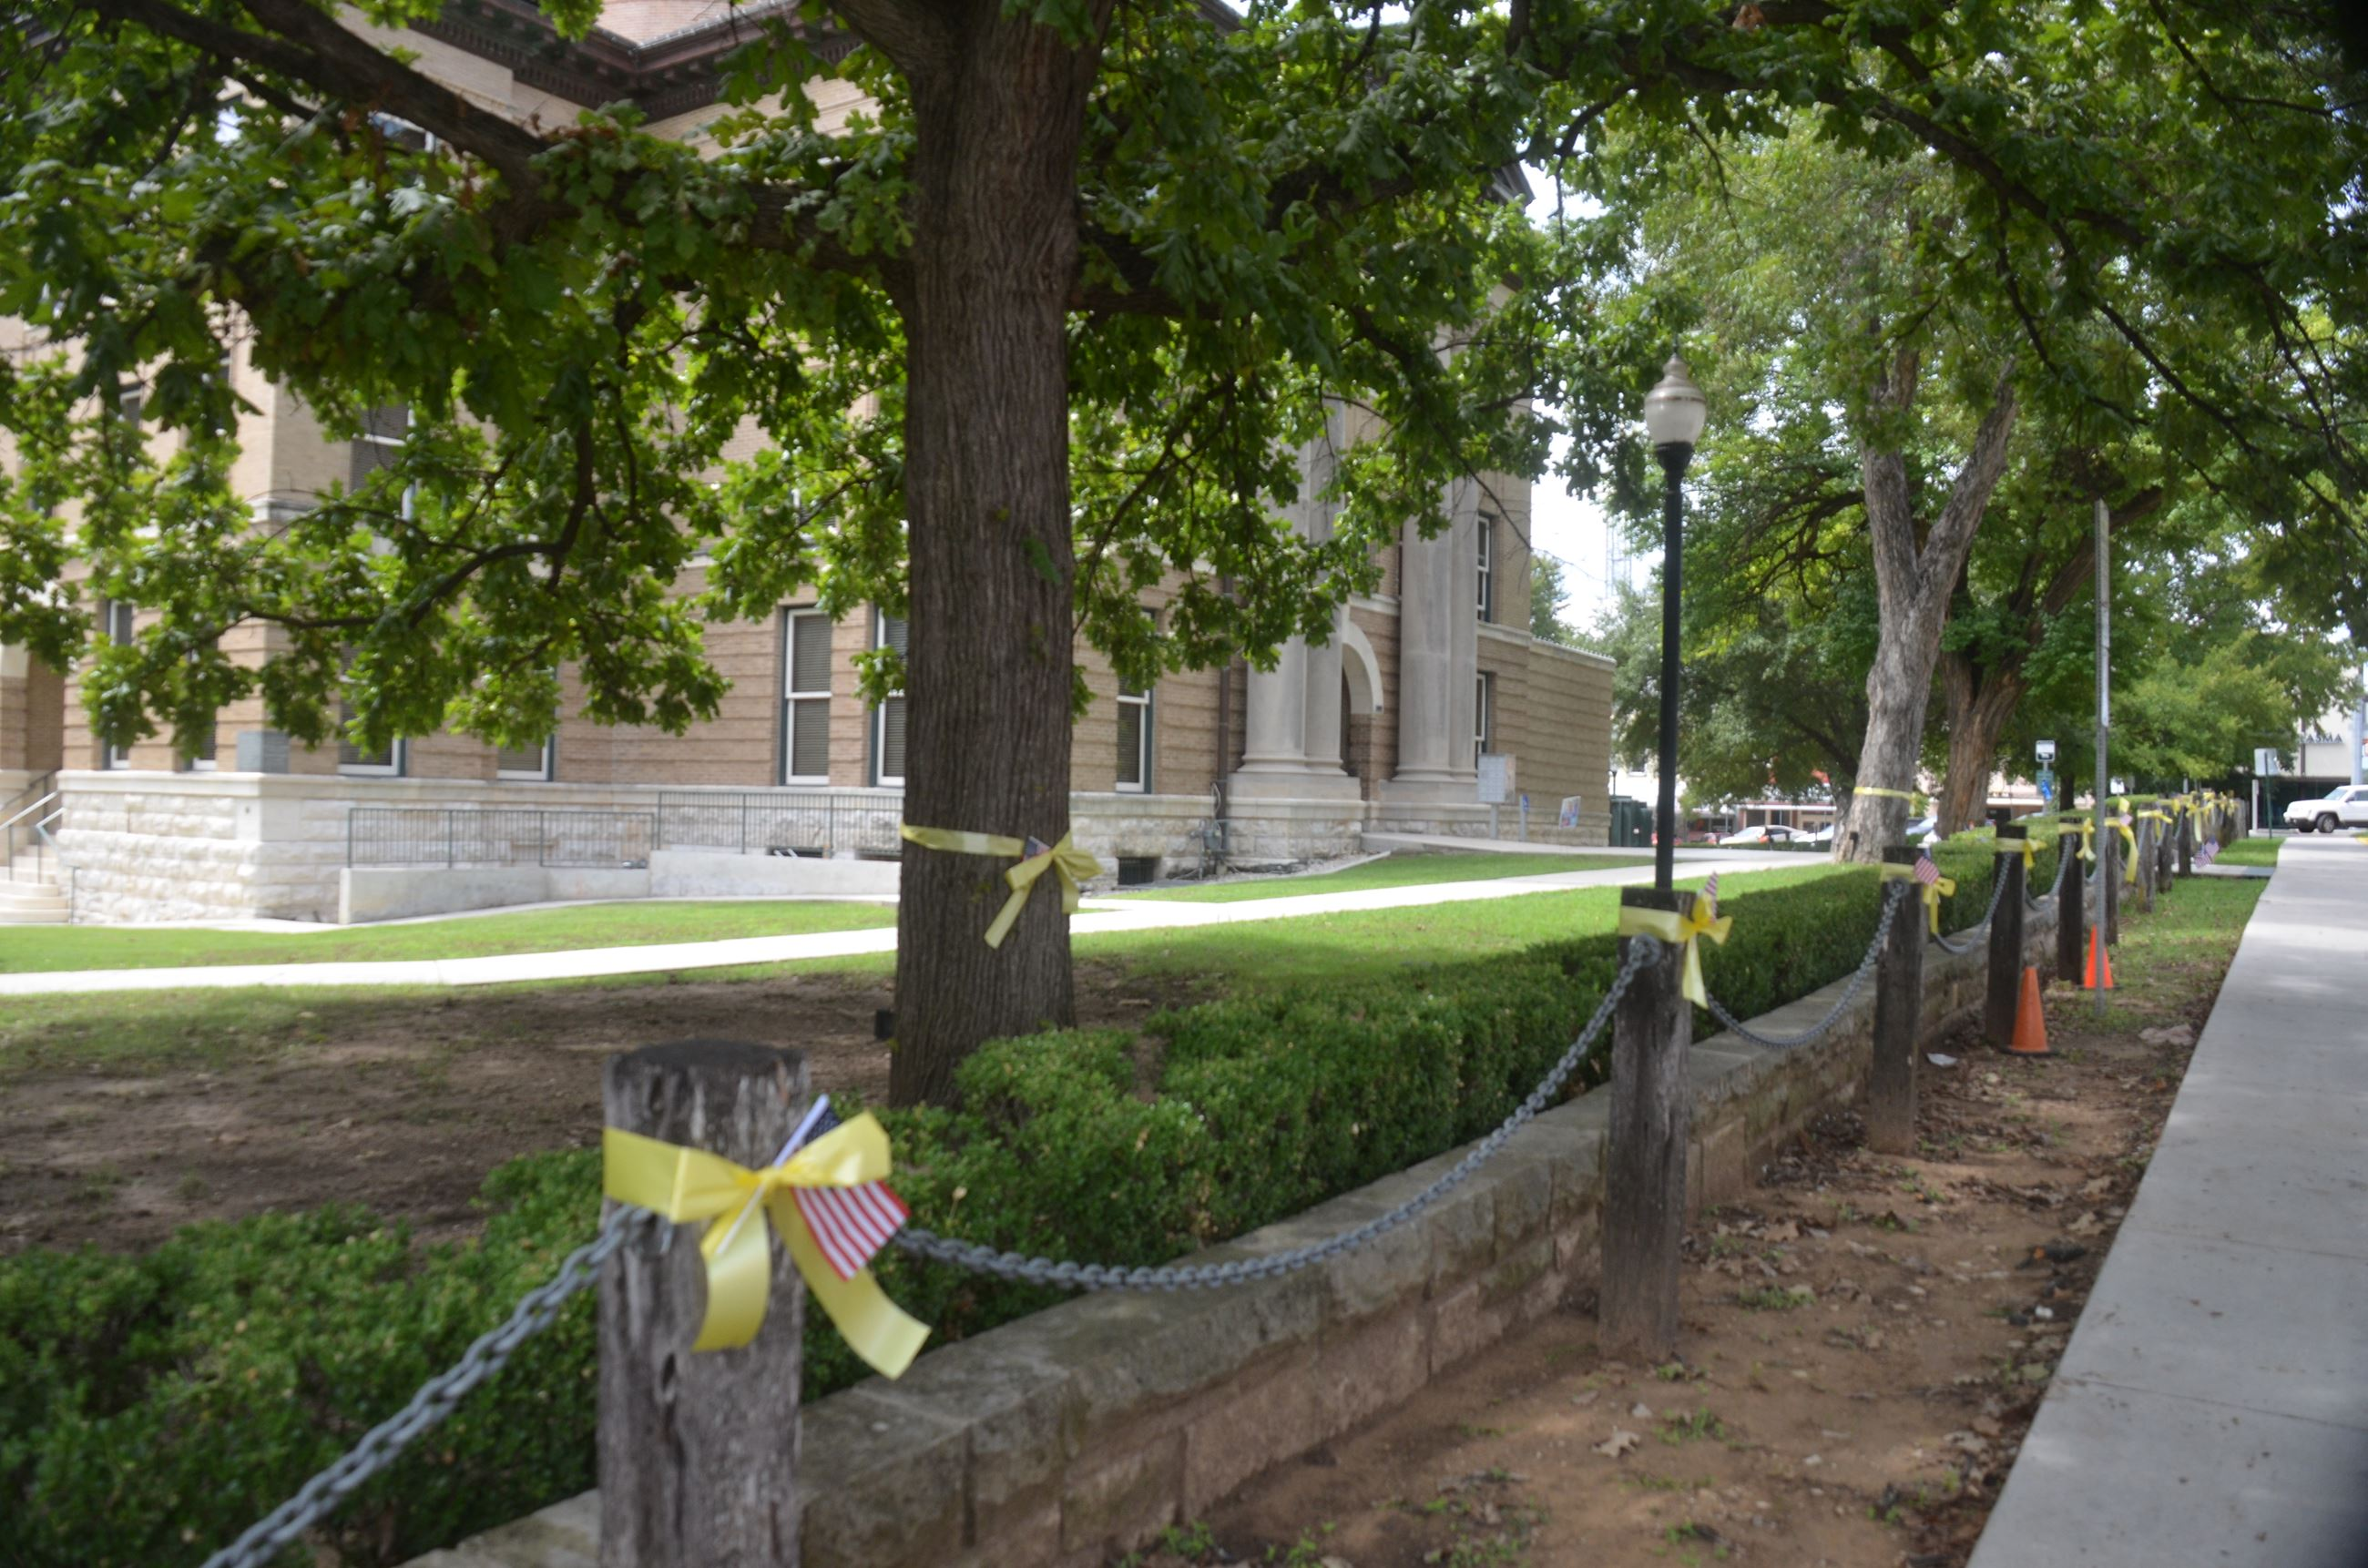 A line of trees tied with a yellow ribbon in front of a courthouse